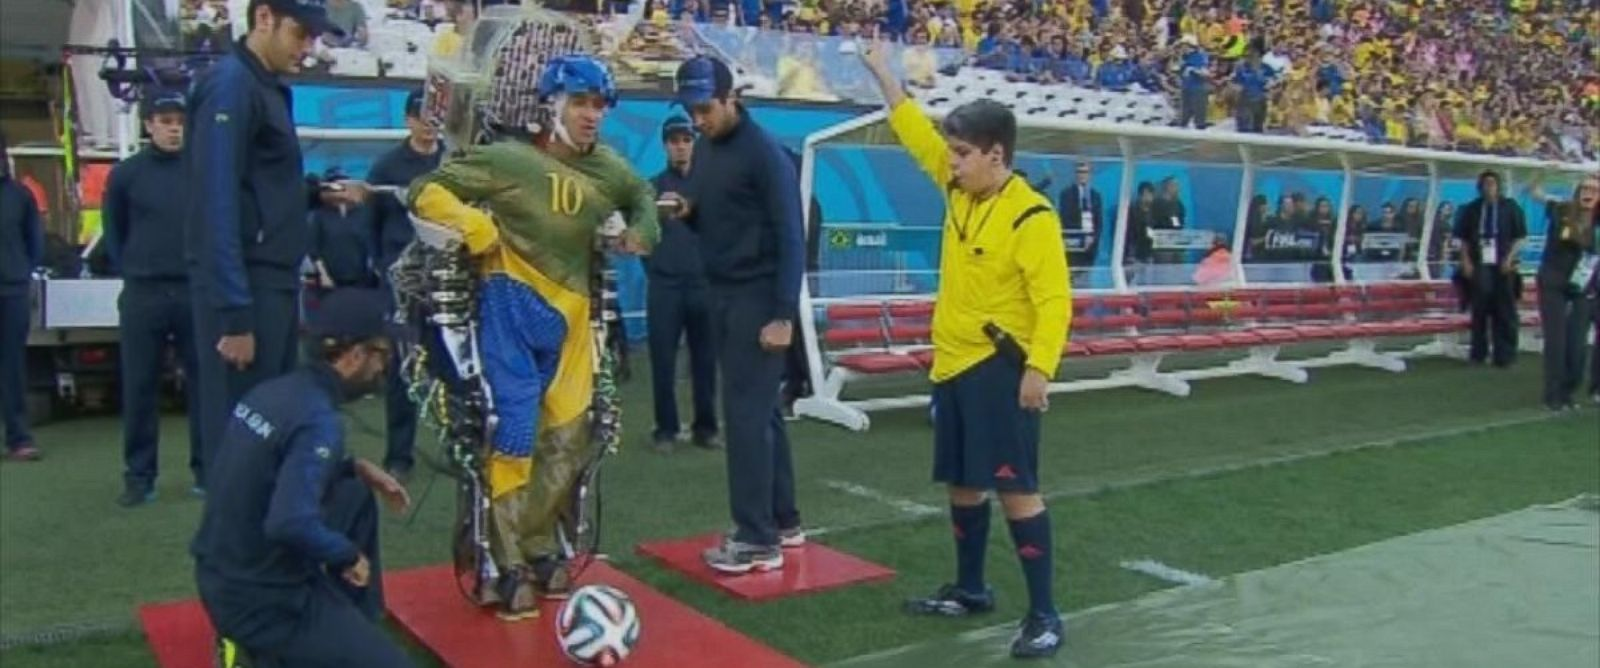 PHOTO: A paraplegic man wears an exoskeleton kicks a soccer ball